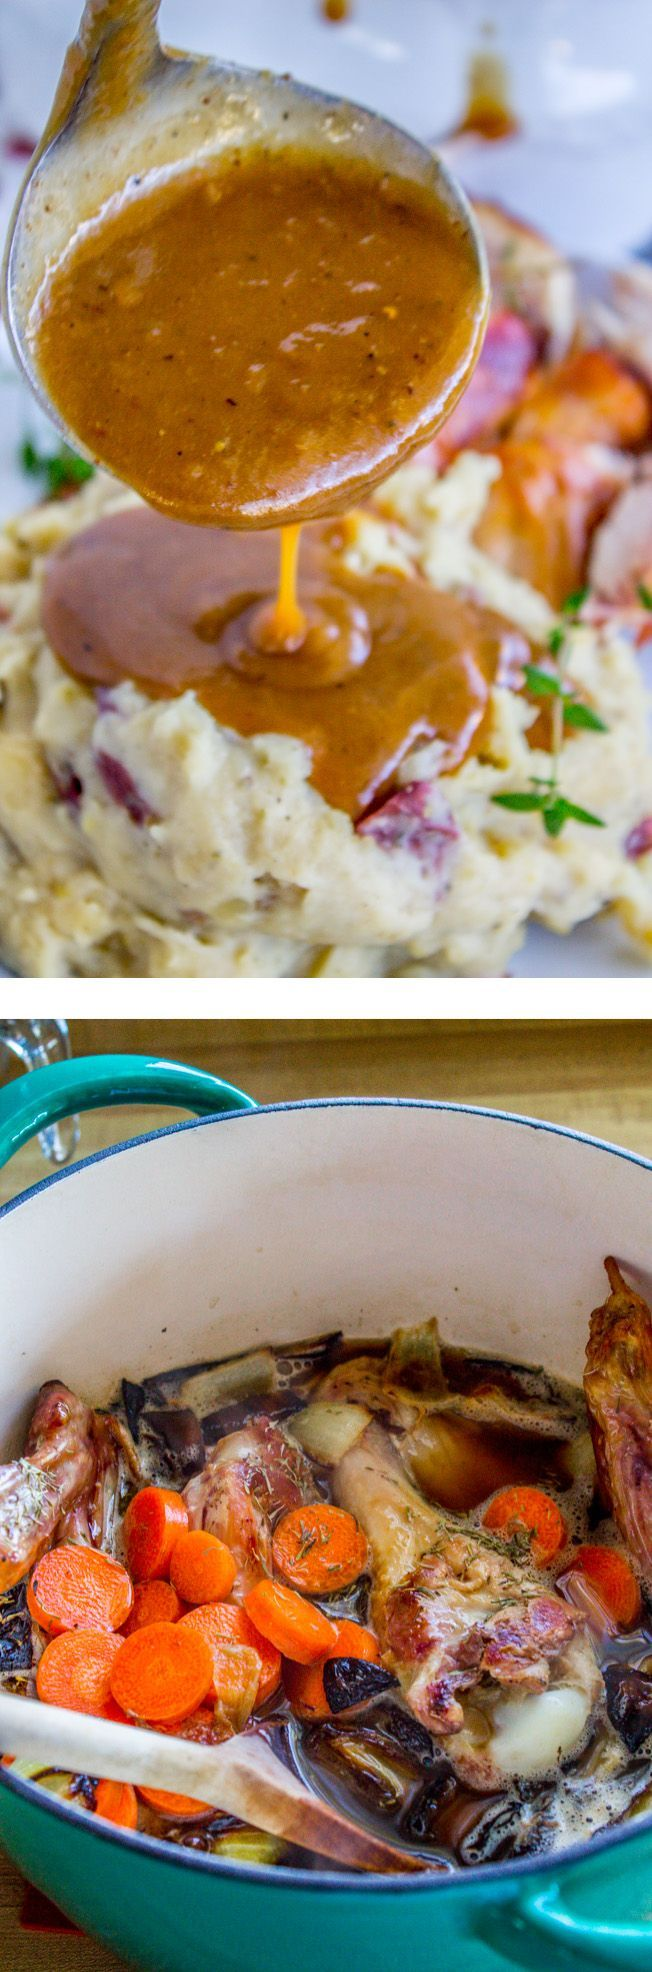 This make-ahead and freeze gravy is so easy, and saves tons of time and stress on Thanksgiving Day! No more scrambling at the last minute! From the Food Charlatan.